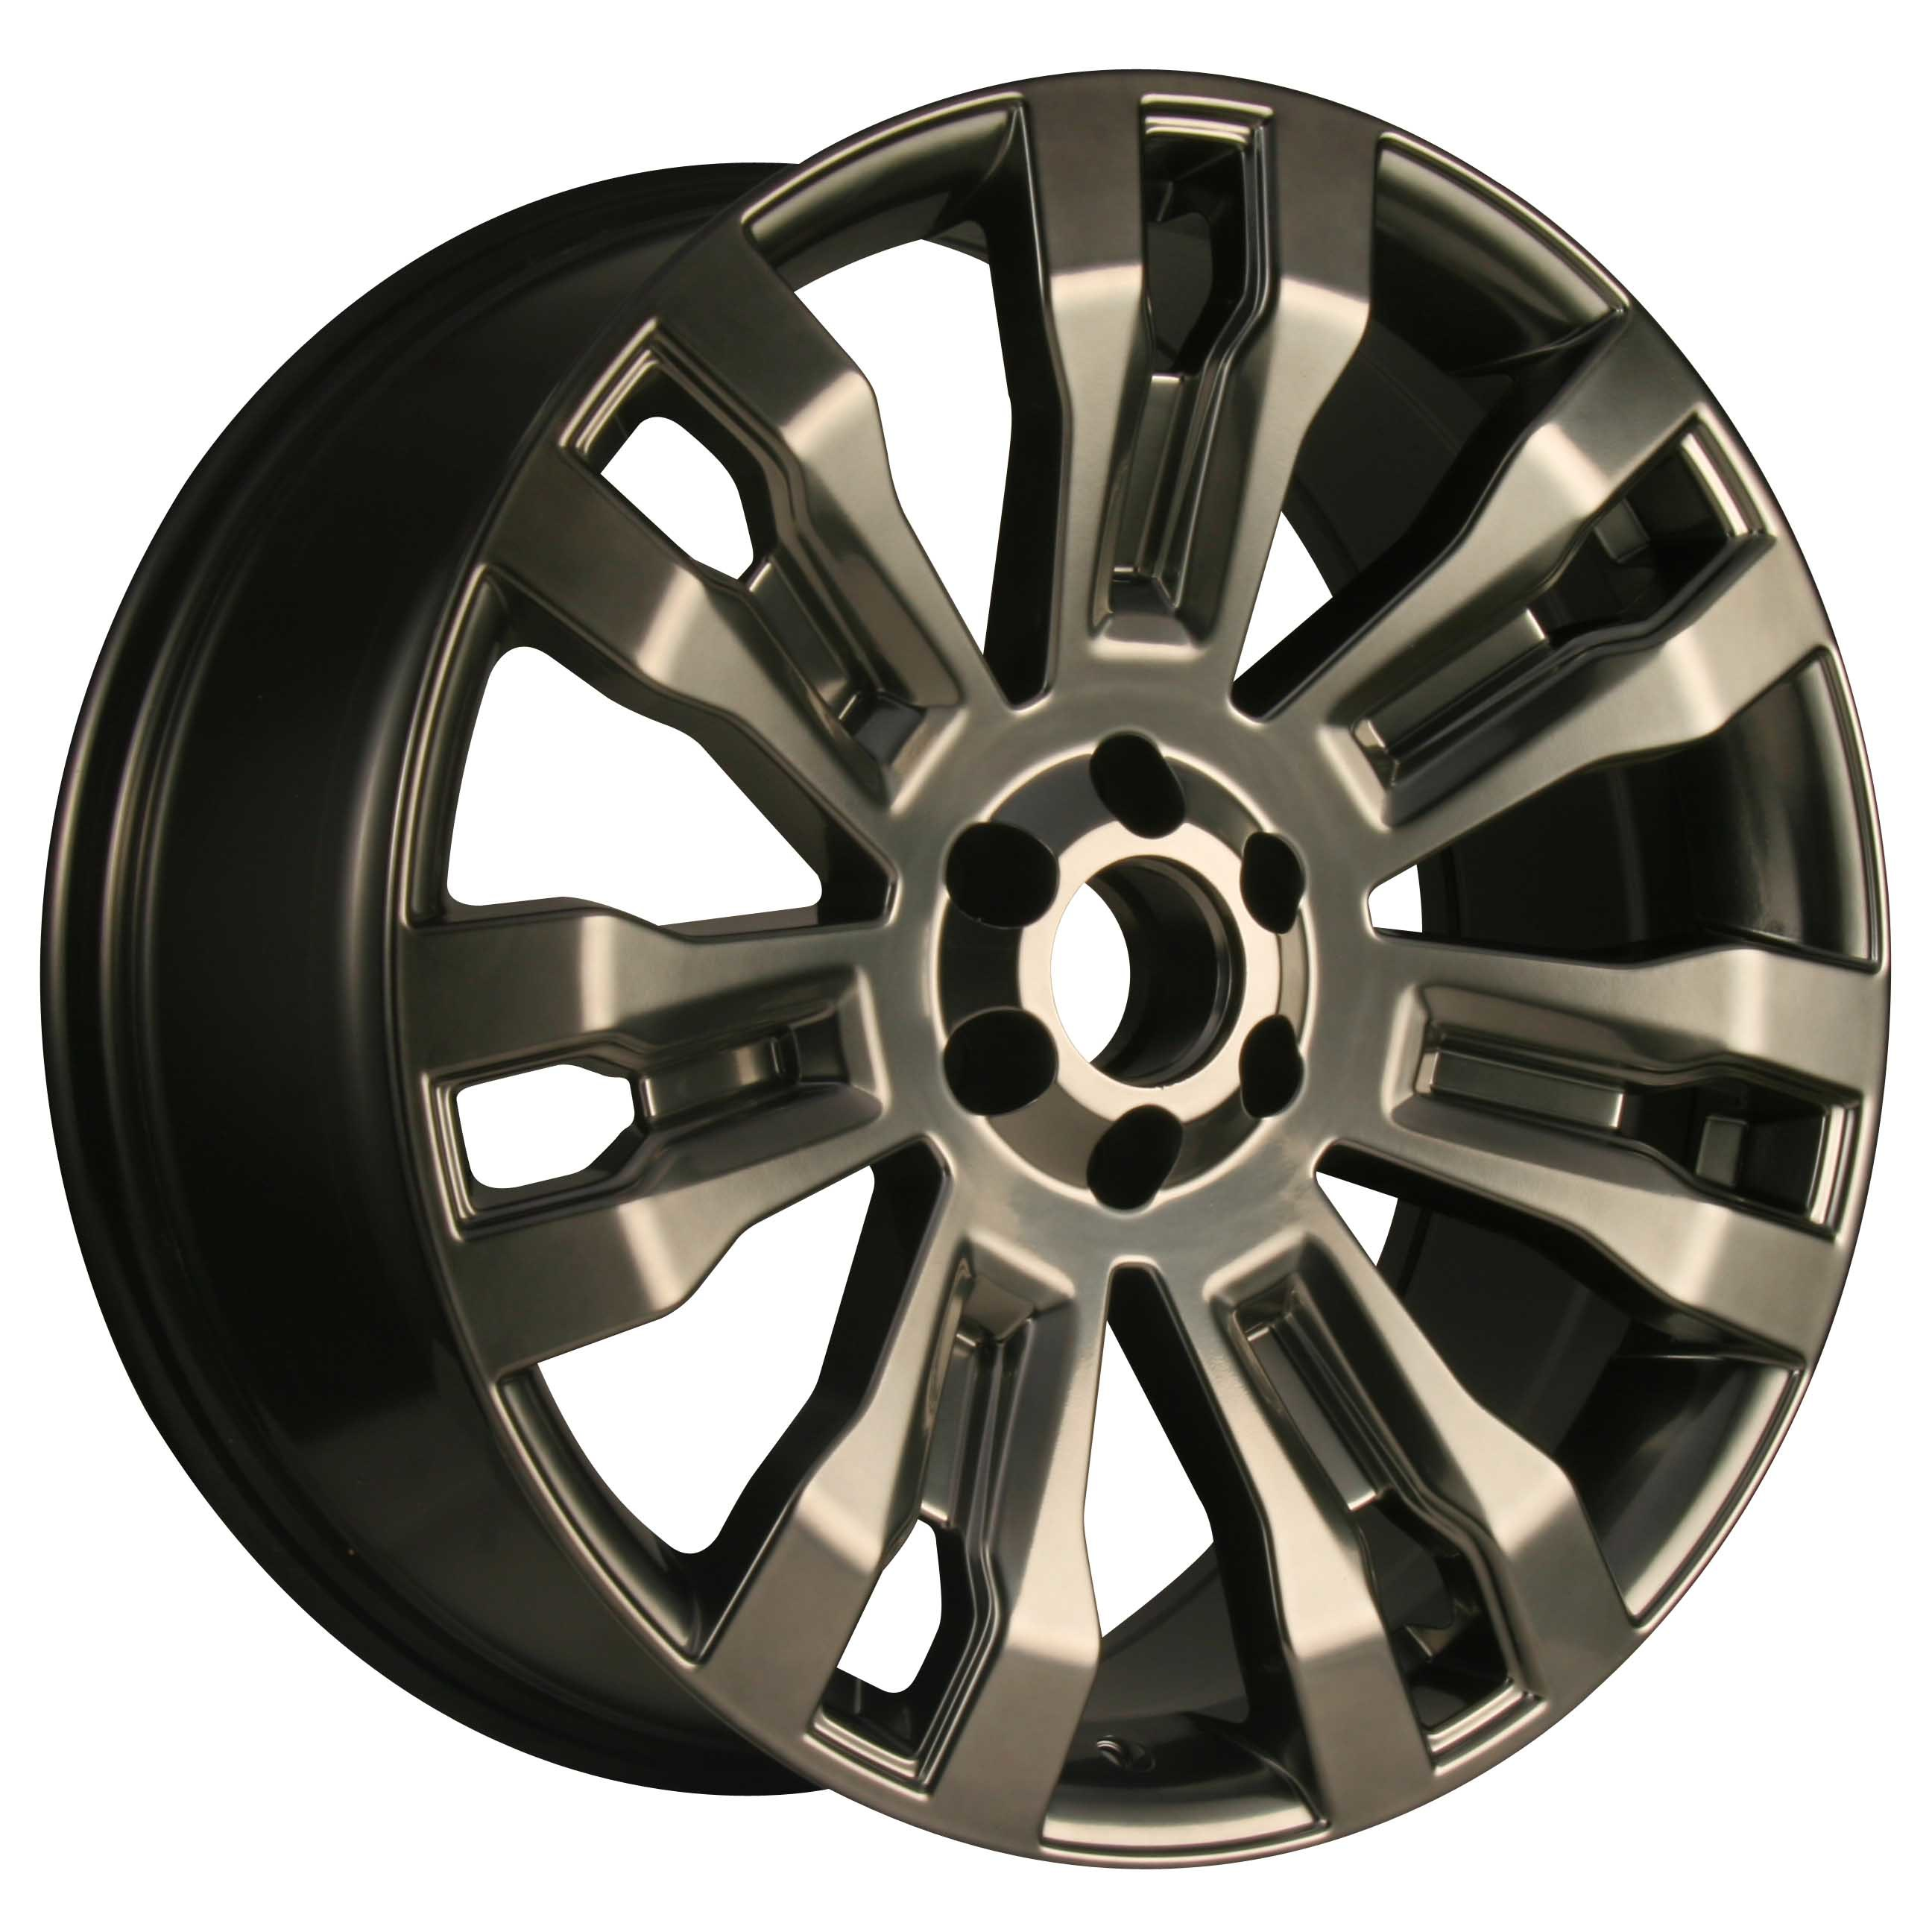 20inch Alloy Wheel Replica Wheel for Nissan 2015 Armada